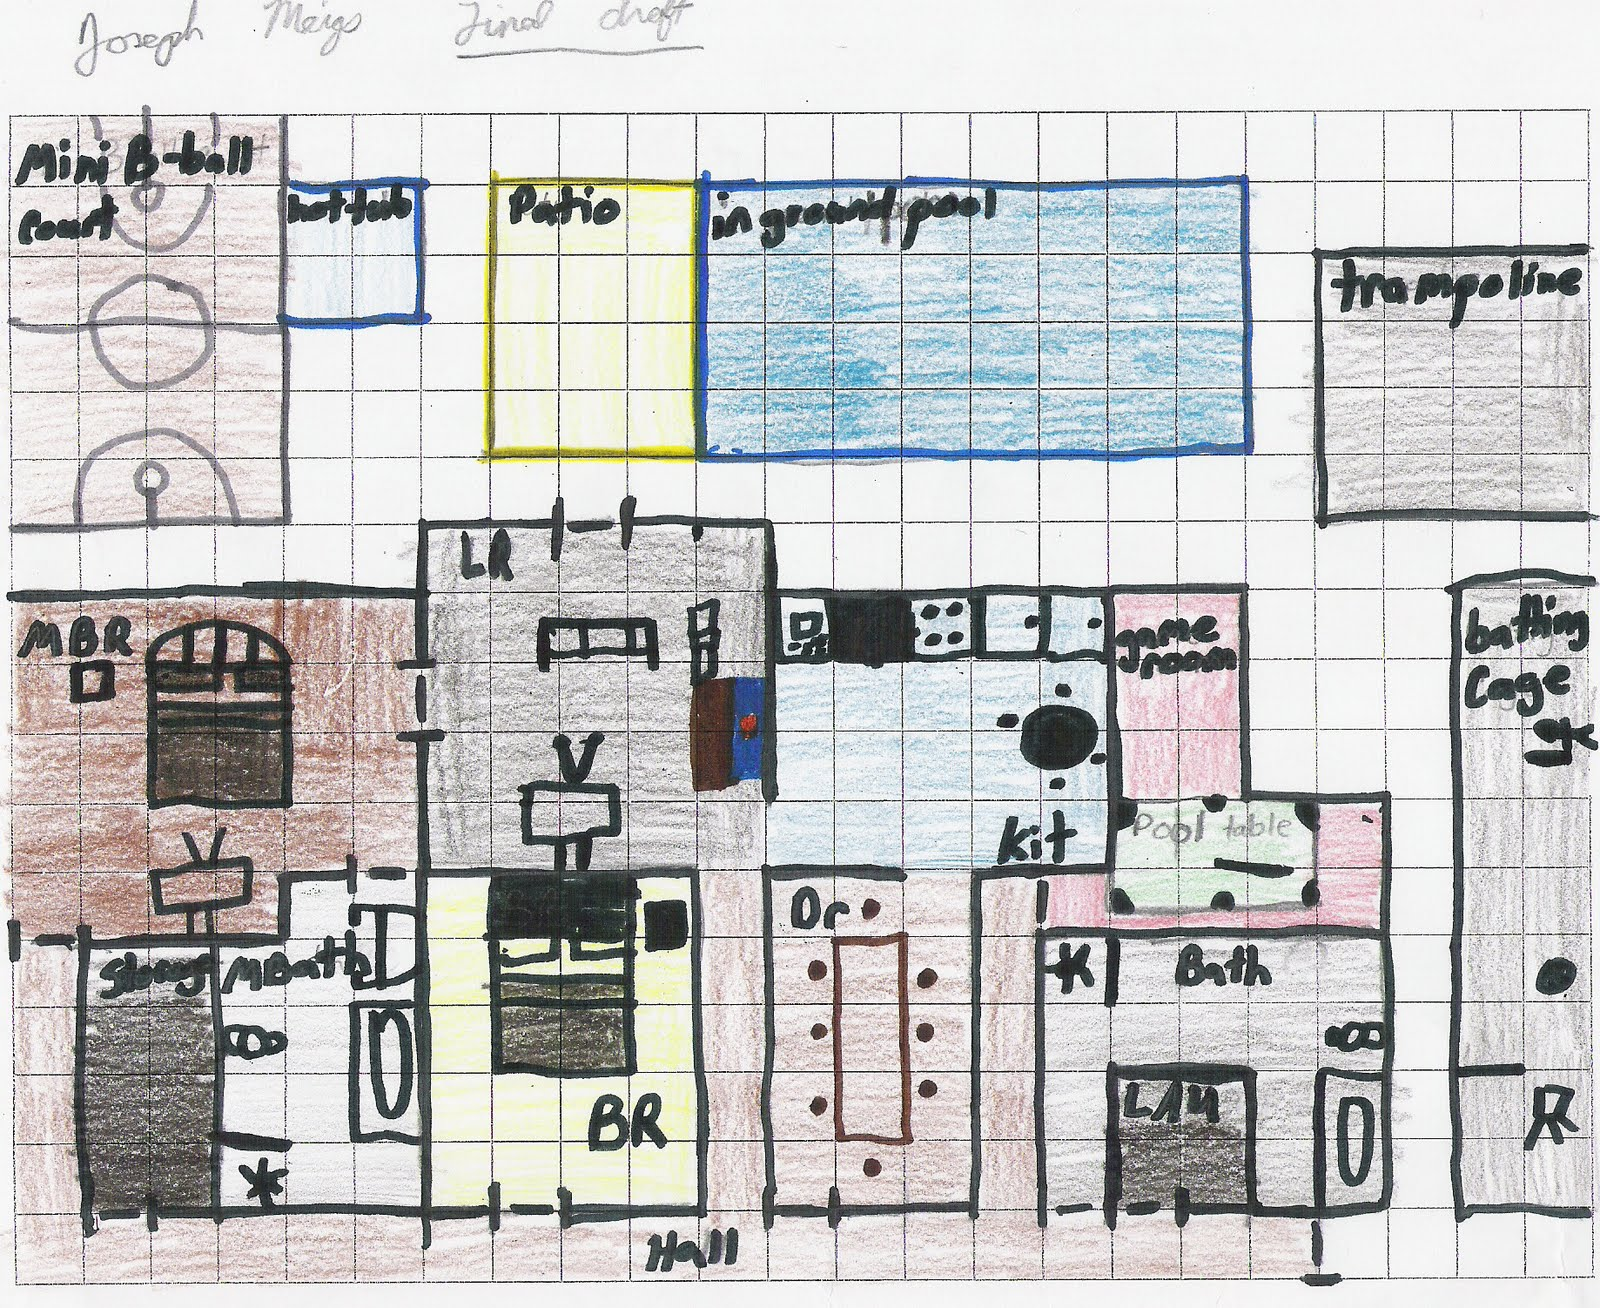 Cms 6th Grade Math Dream House Project Samples